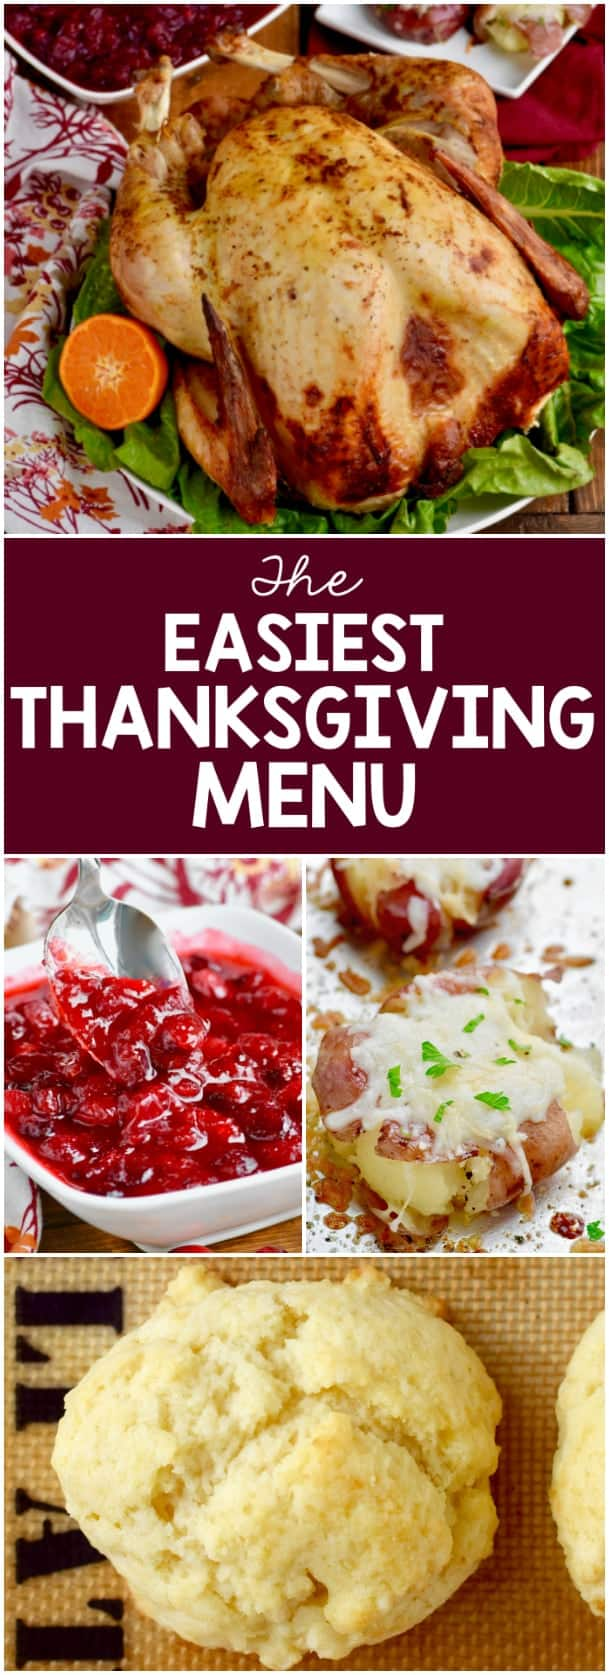 The Easiest Thanksgiving Menu